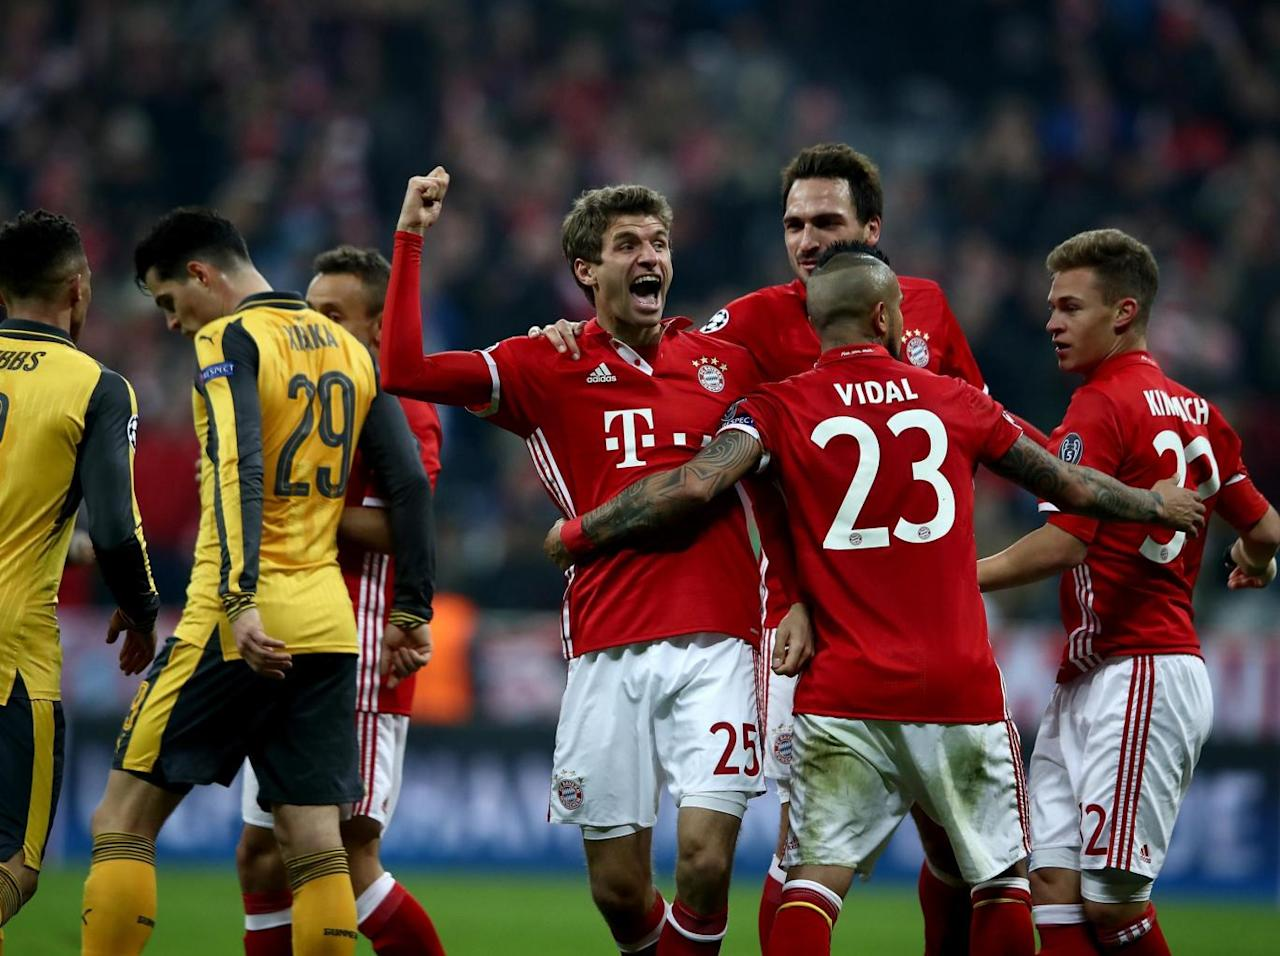 Arsenal vs Bayern Munich: What time is kick-off, what is the team news and where can I watch a live stream?